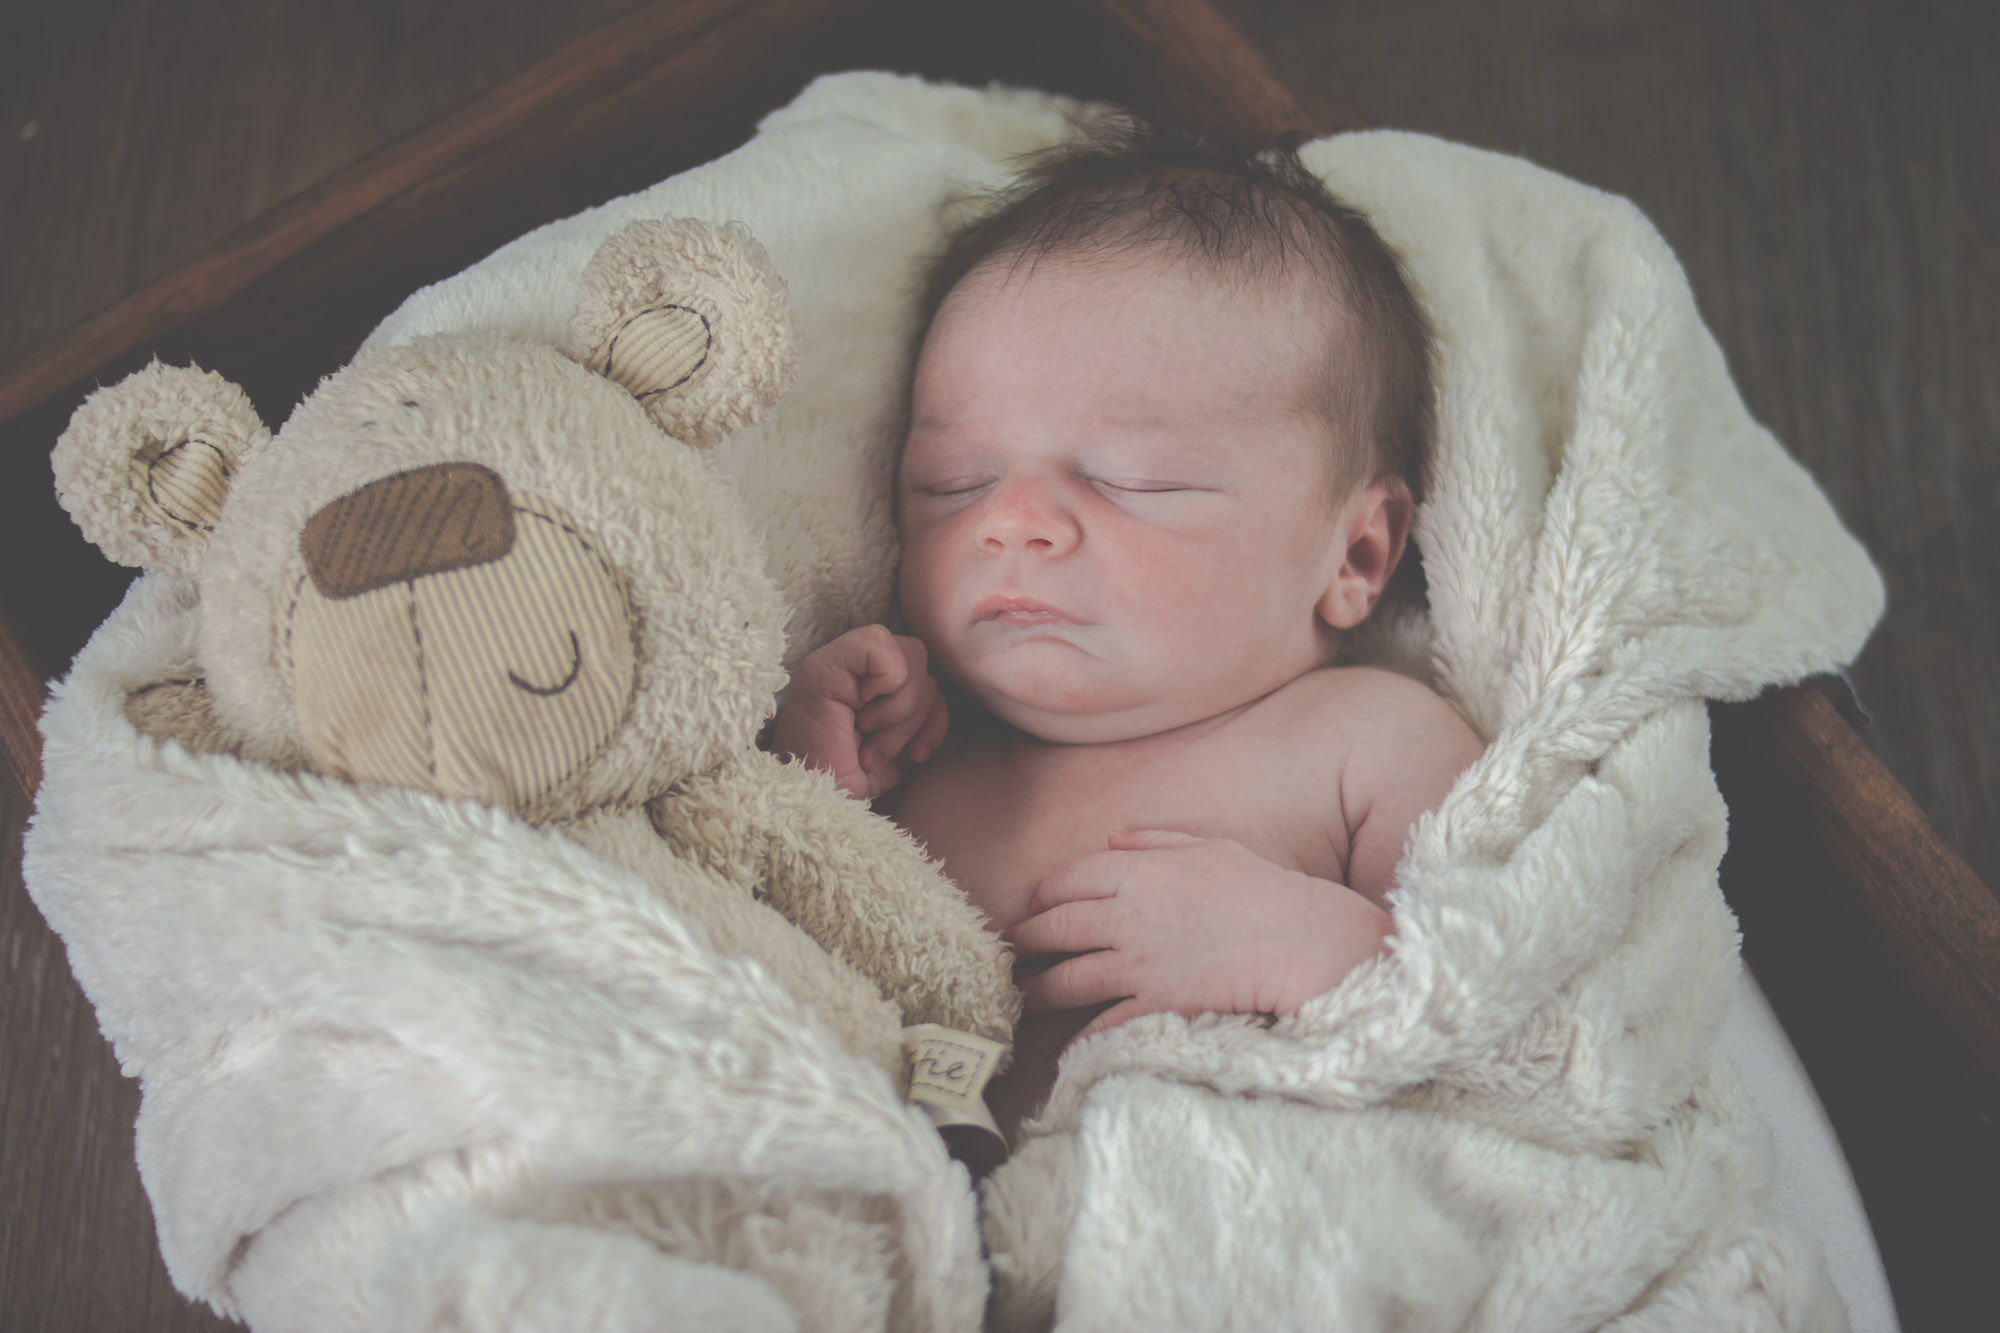 newborn-portraits-photos-bradford-skipton-west-north-yorkshire-7.jpg